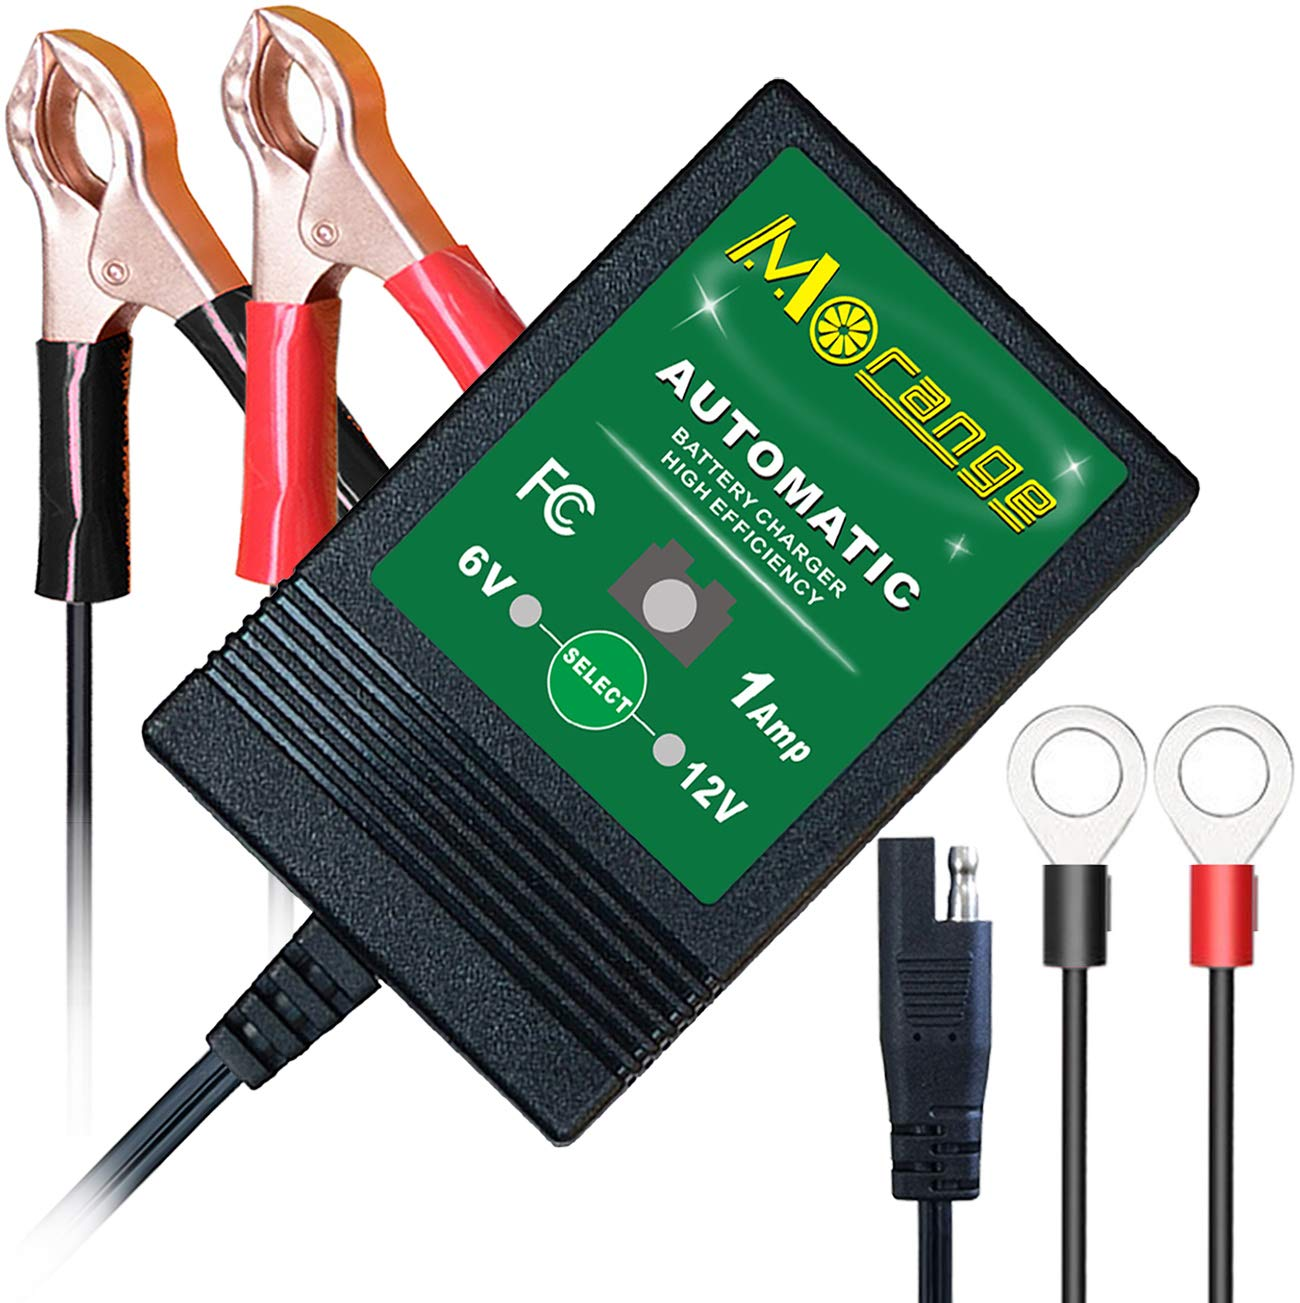 Mroinge MBC016 6V / 12V 1A fully automatic trickle battery charger/maintainer for automotive vehicle motorcycle Lawn Mower ATV RV powersport boat, ...